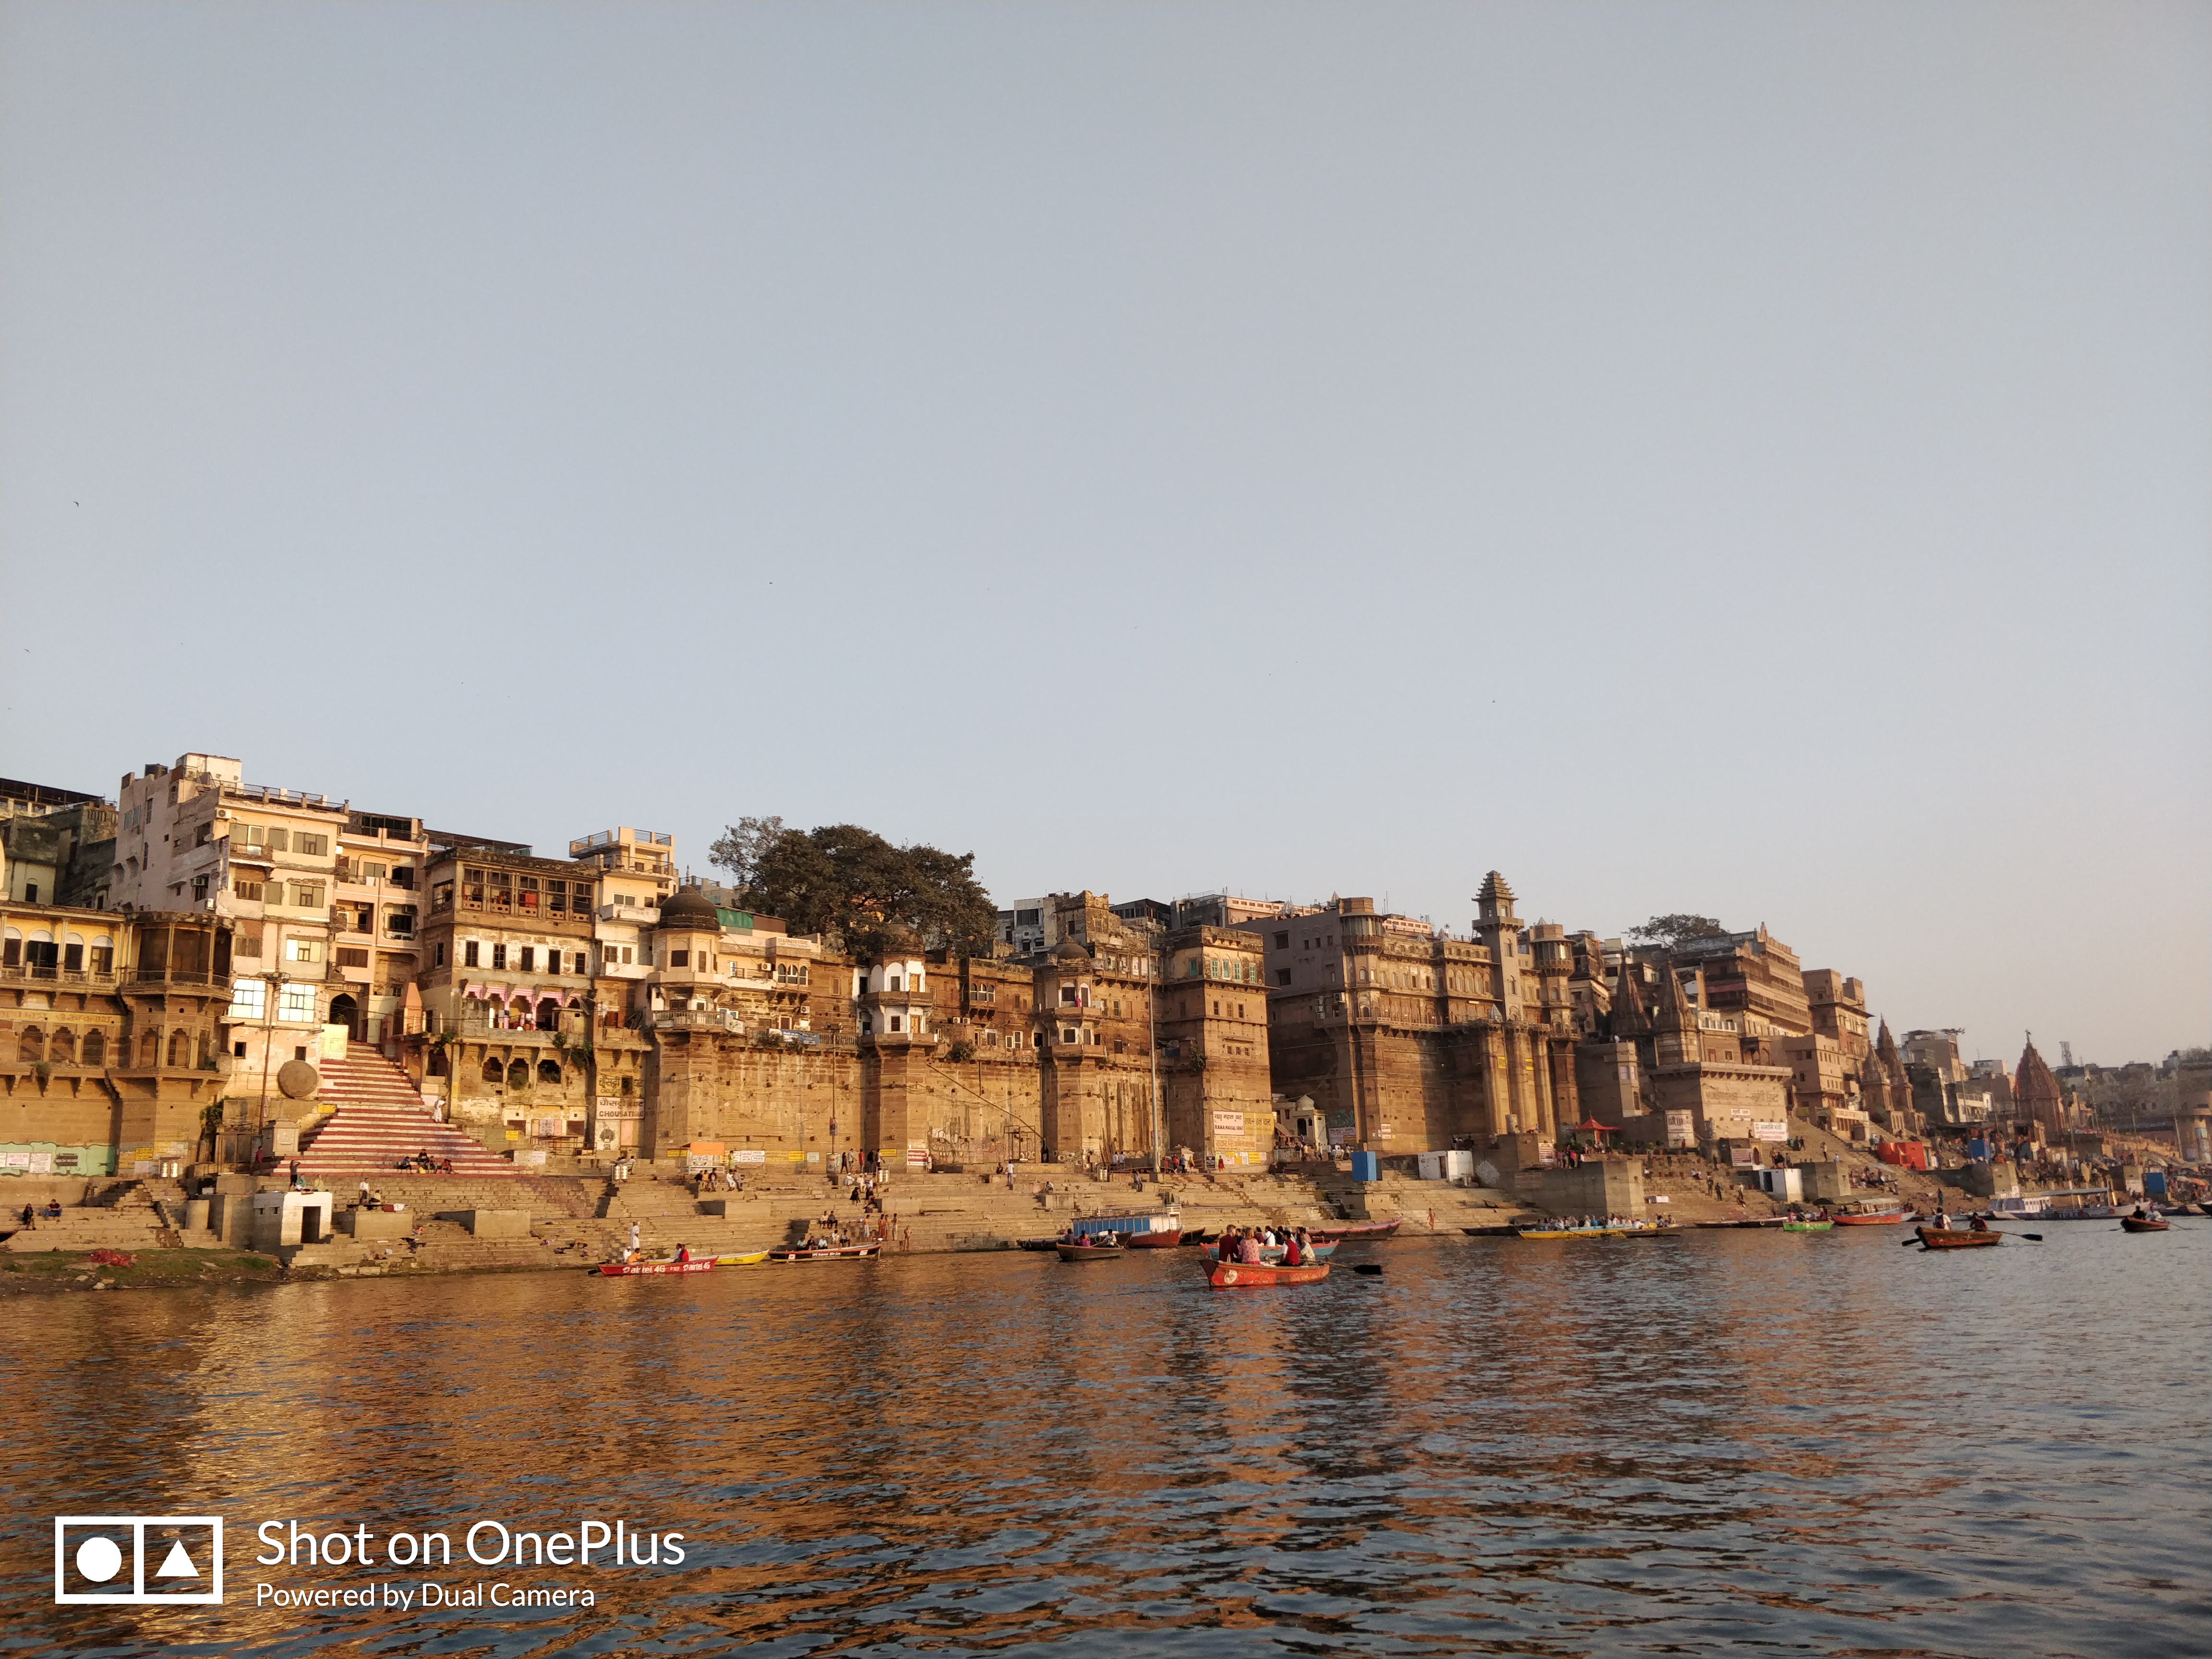 View of Ghats from Ganga River